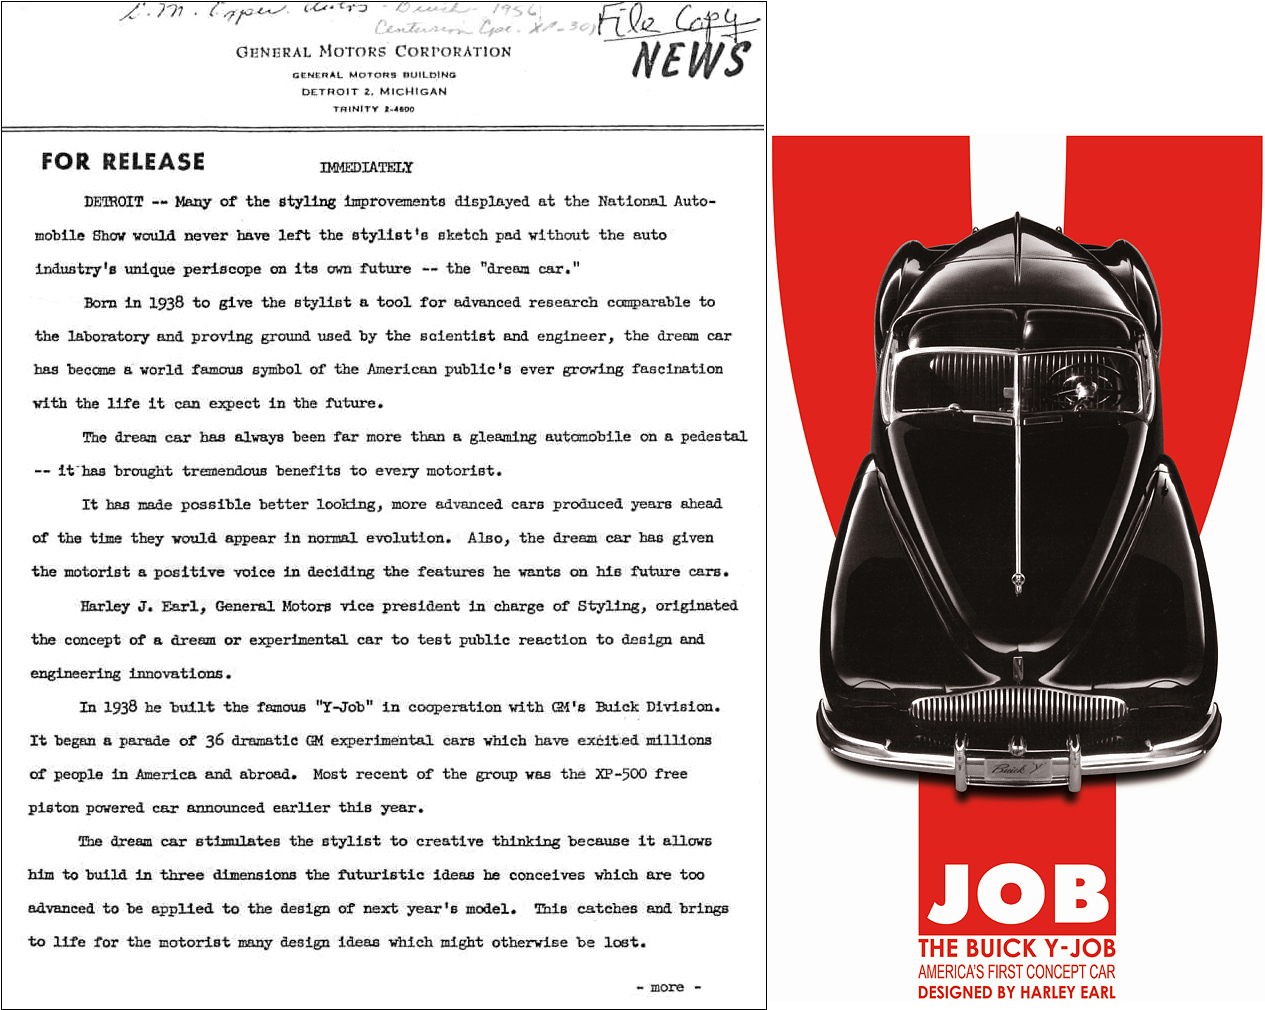 This rare and never before published press release documents Pioneer-Earl's game changing new business paradigm. While doing research in GM Design, at the GMTC in 2004, Richard unearthed a trove of hidden archival evidence (like this historic press release) on the auto industry's greatest era. Like to read the entire 3-pg press release, send us an  email .